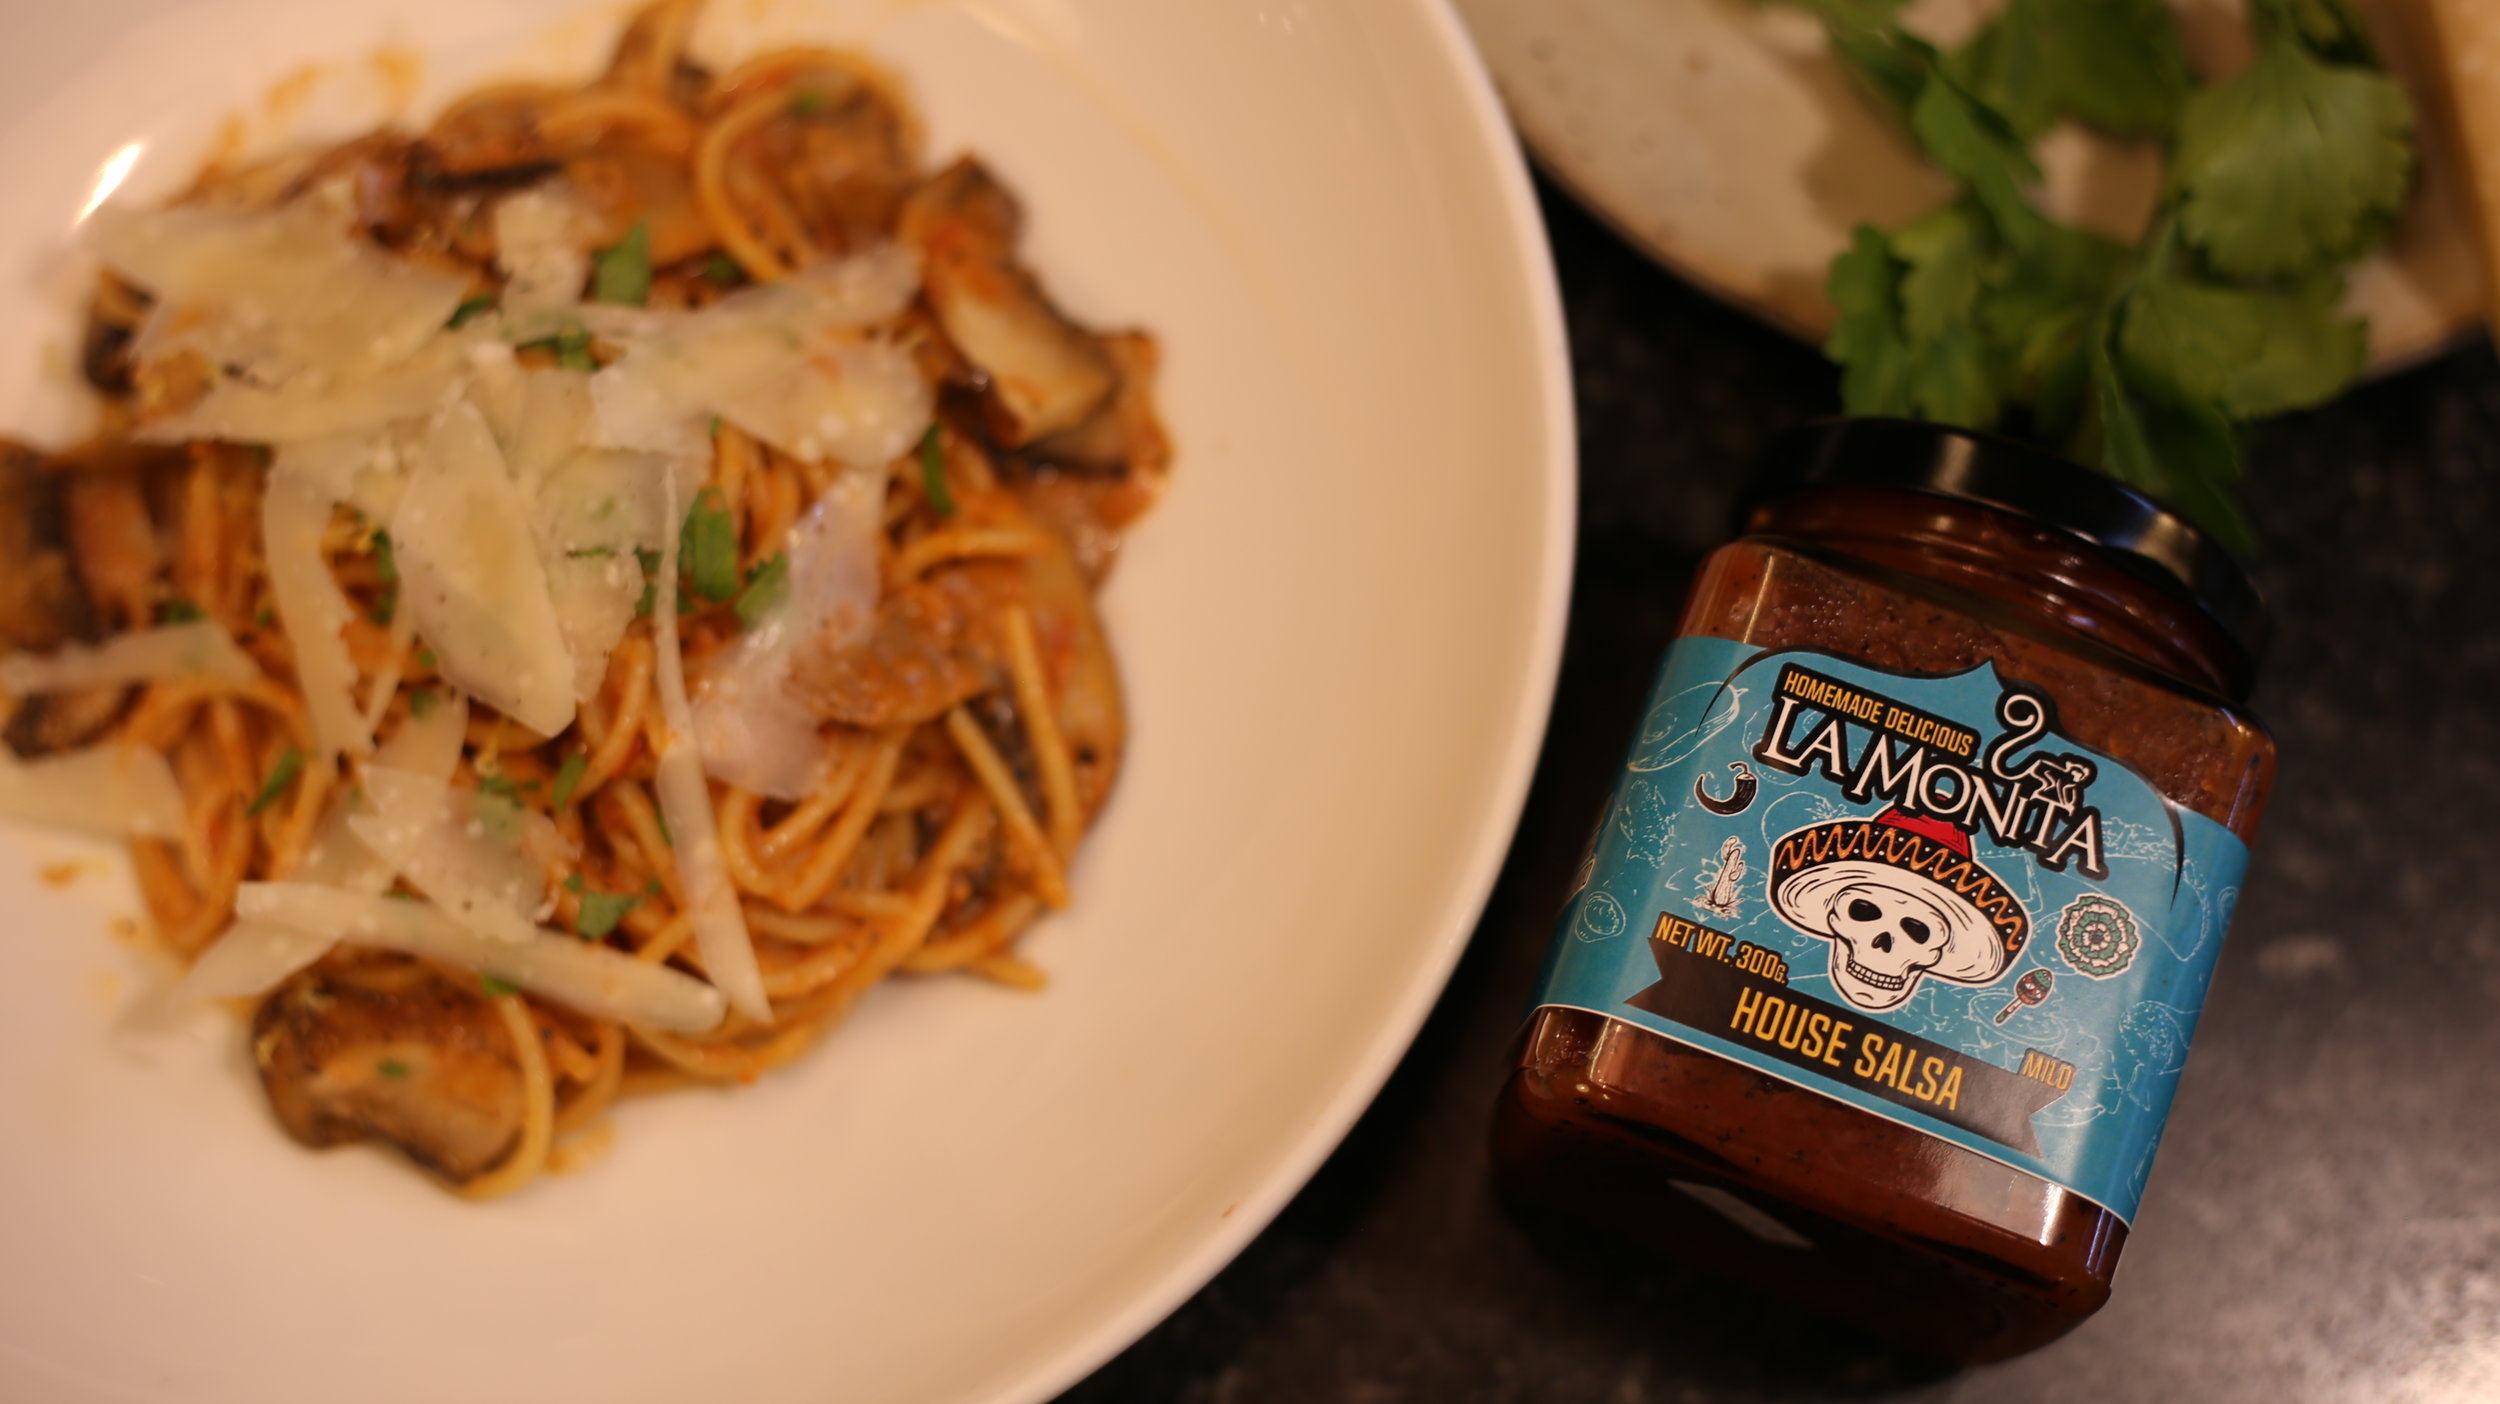 LA MONITA PASTA WITH HOUSE SALSA MUSHROOM CREAM SAUCE